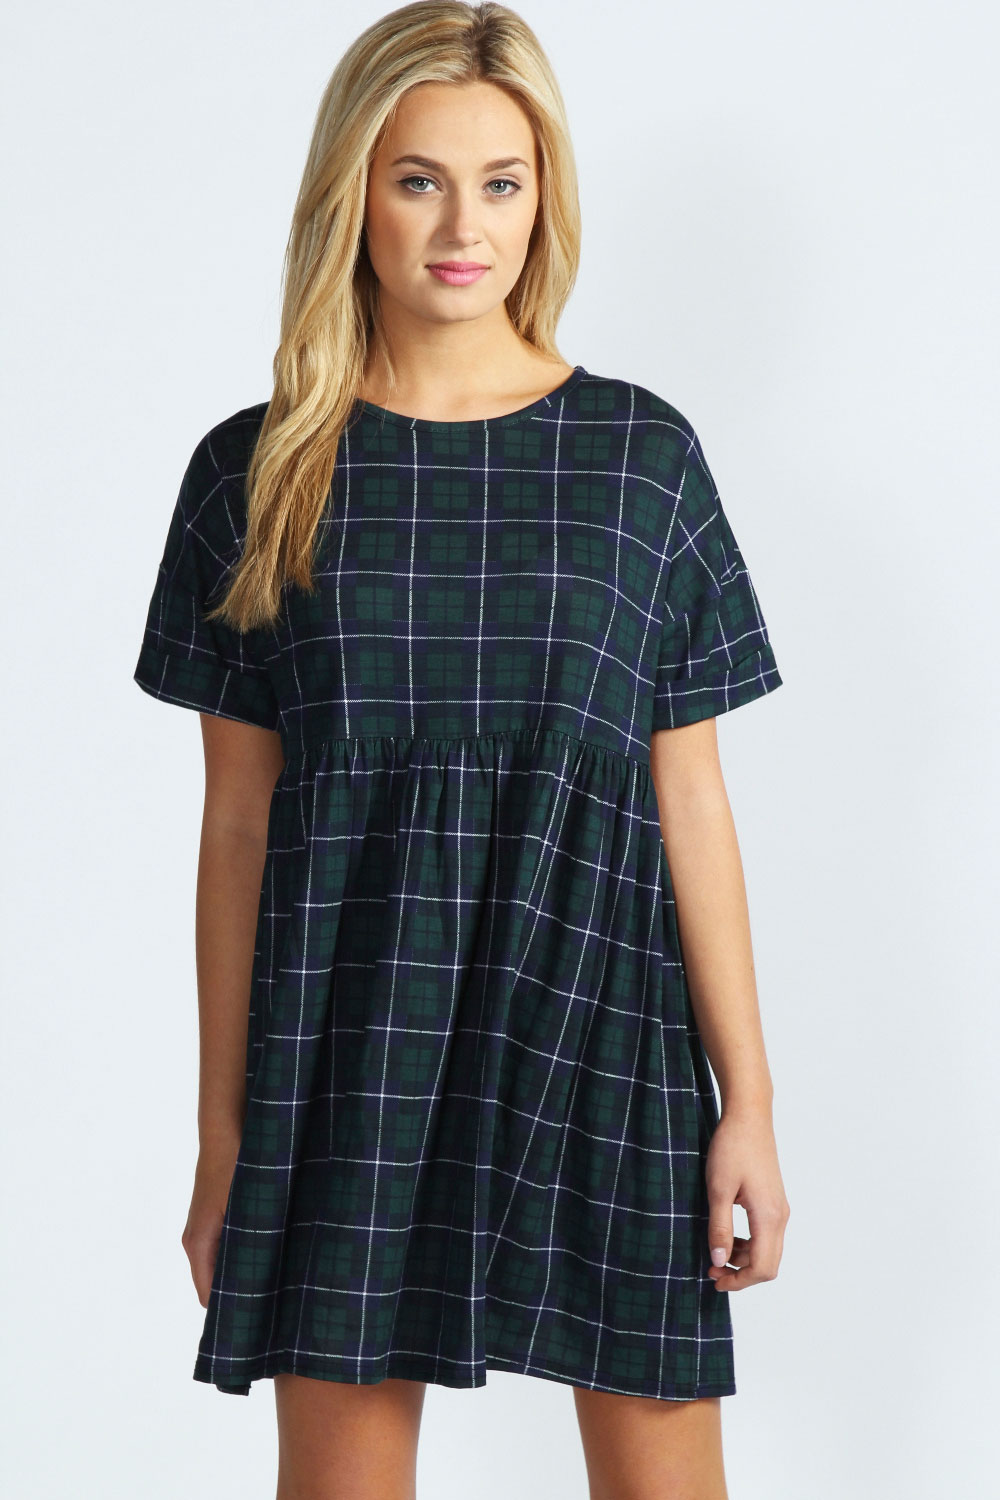 Boohoo-Kate-Tartan-Oversized-Smock-Dress-In-Multi